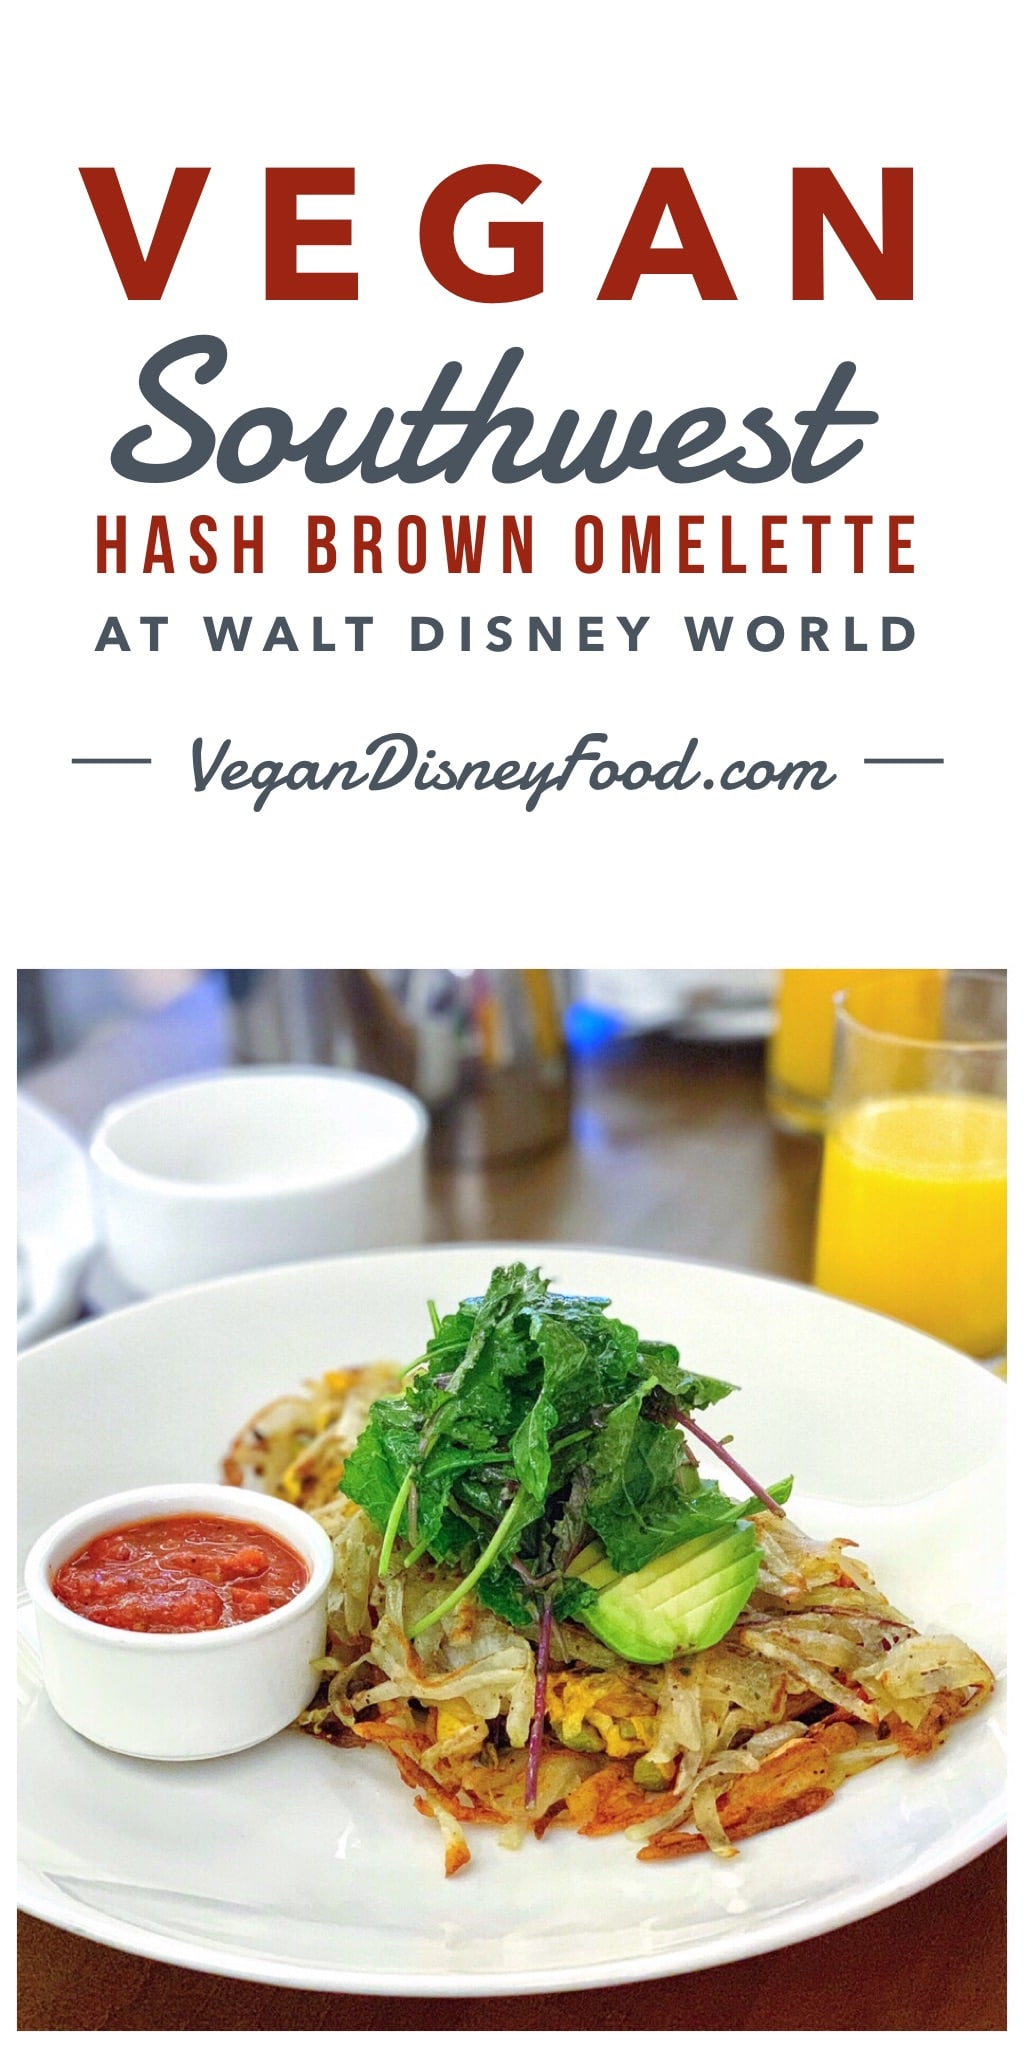 Vegan Southwest Hash Brown Omelette at the Waldorf Astoria Orlando in Walt Disney World